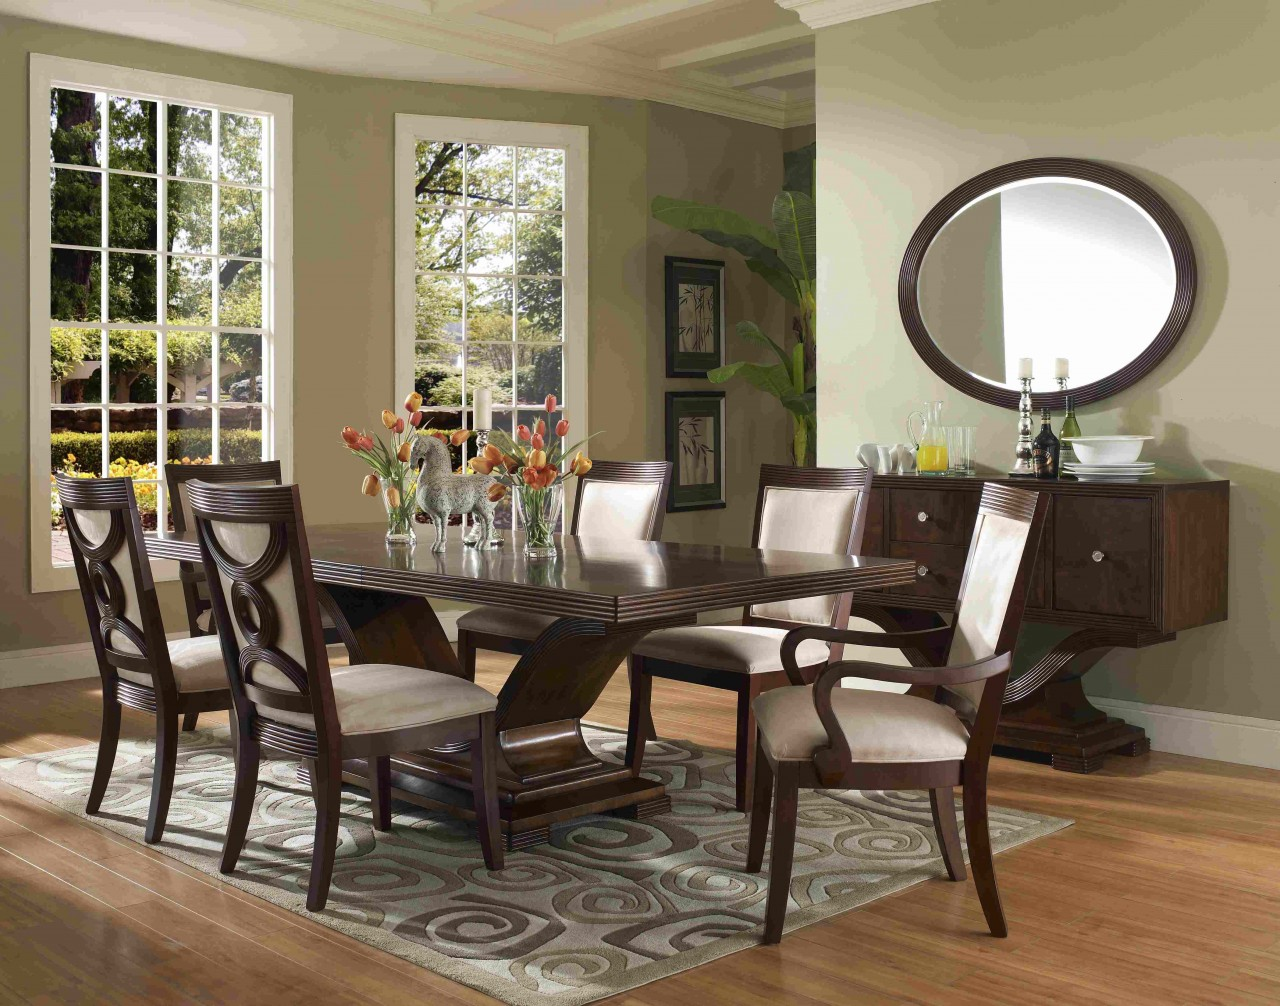 Perfect formal dining room sets for 8 homesfeed for Small white dining room sets